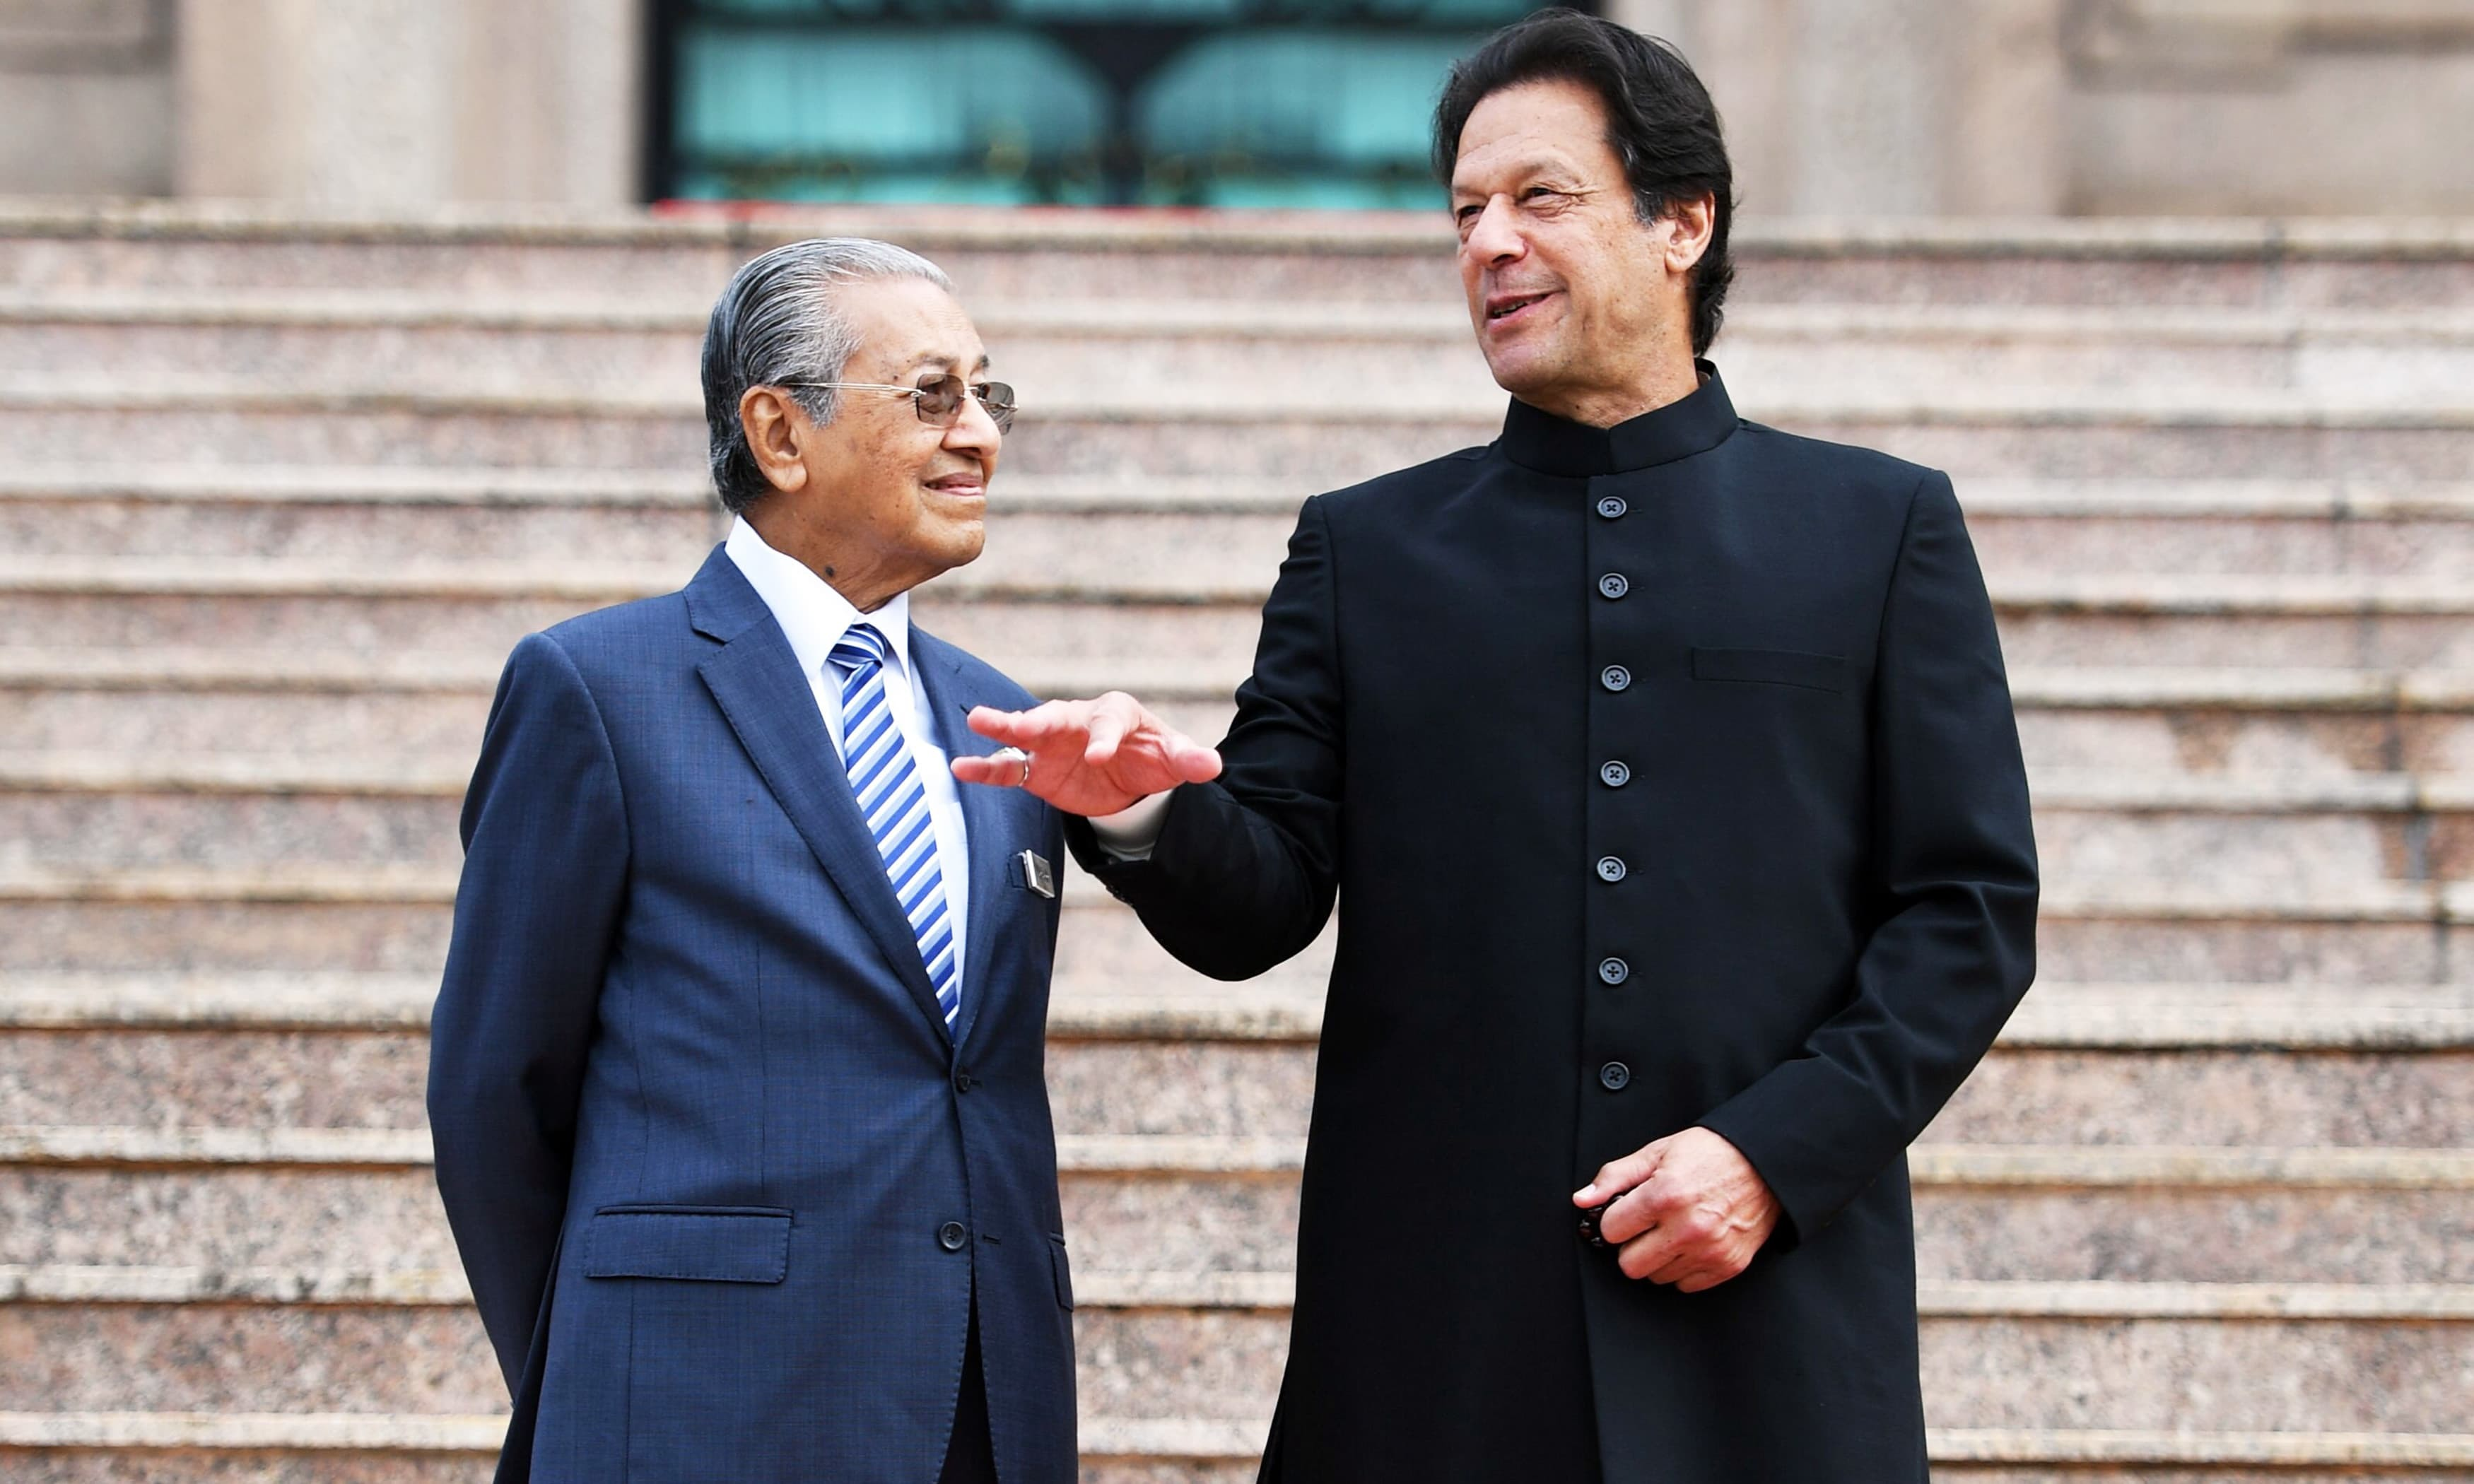 Malaysia's PM Mahathir Mohamad listens to Imran Khan during a welcoming ceremony at the prime minister's office in Putrajaya in November last year. — AFP